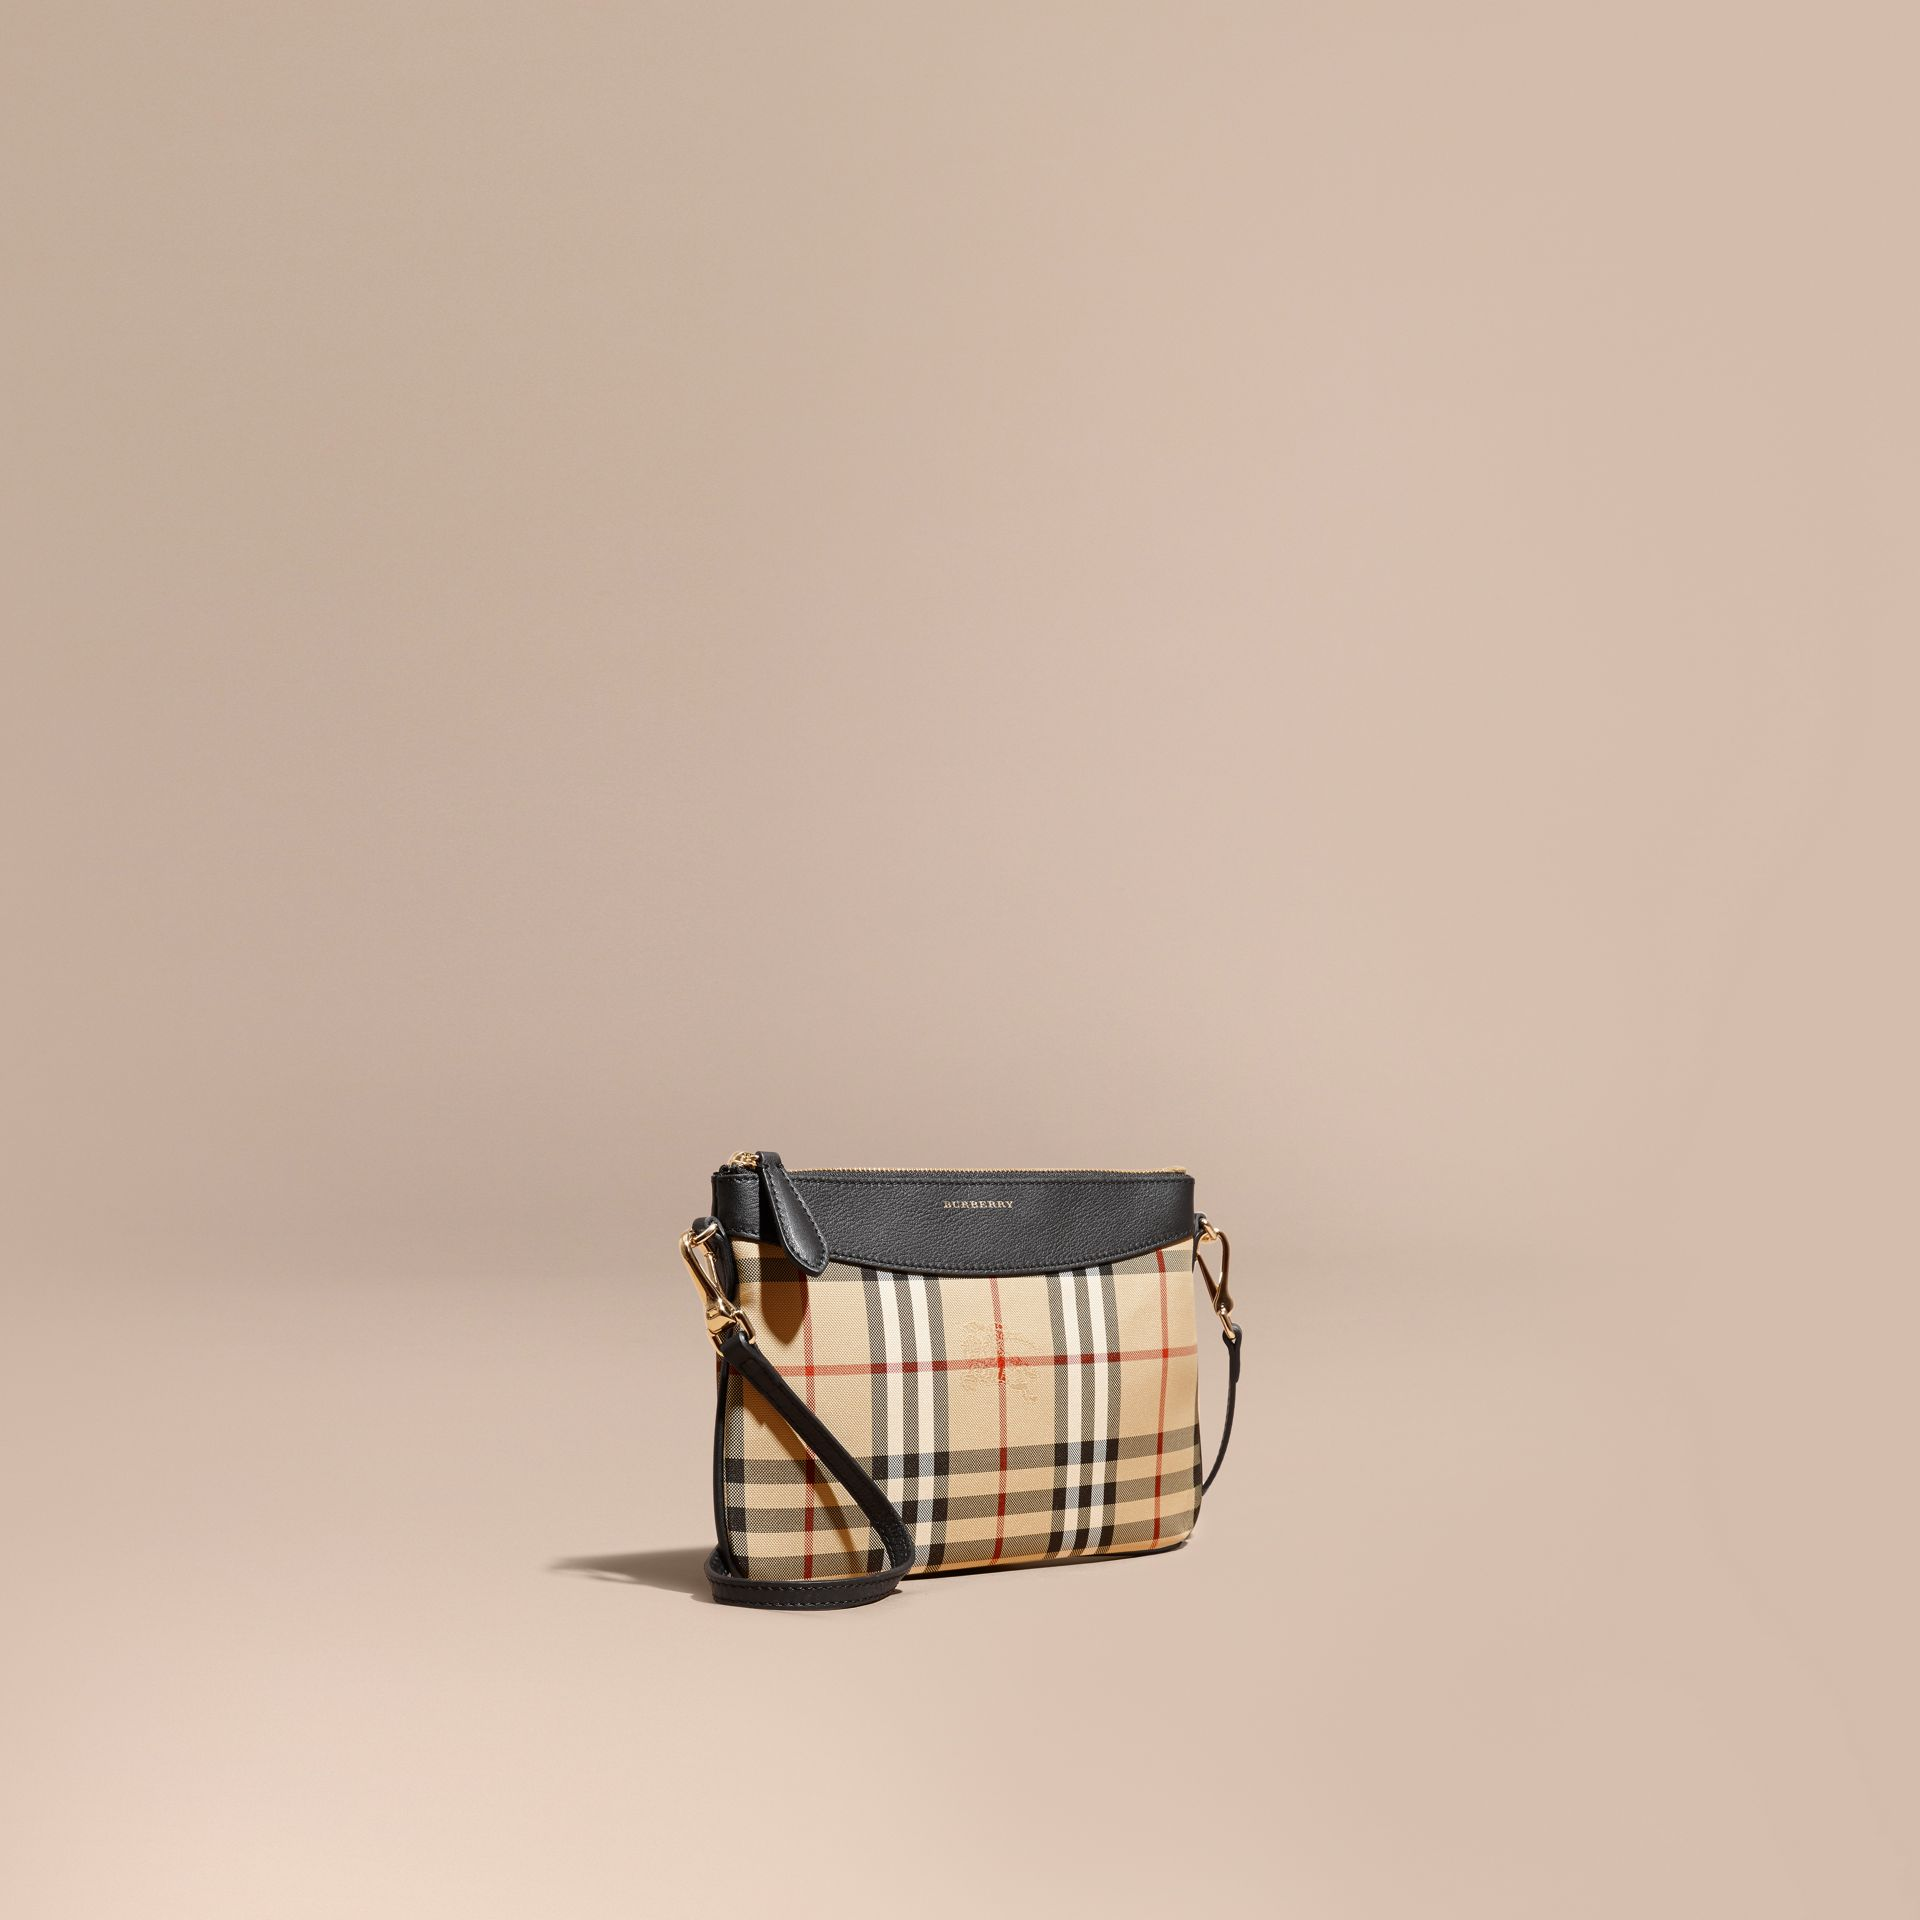 Horseferry Check and Leather Clutch Bag Black - gallery image 1